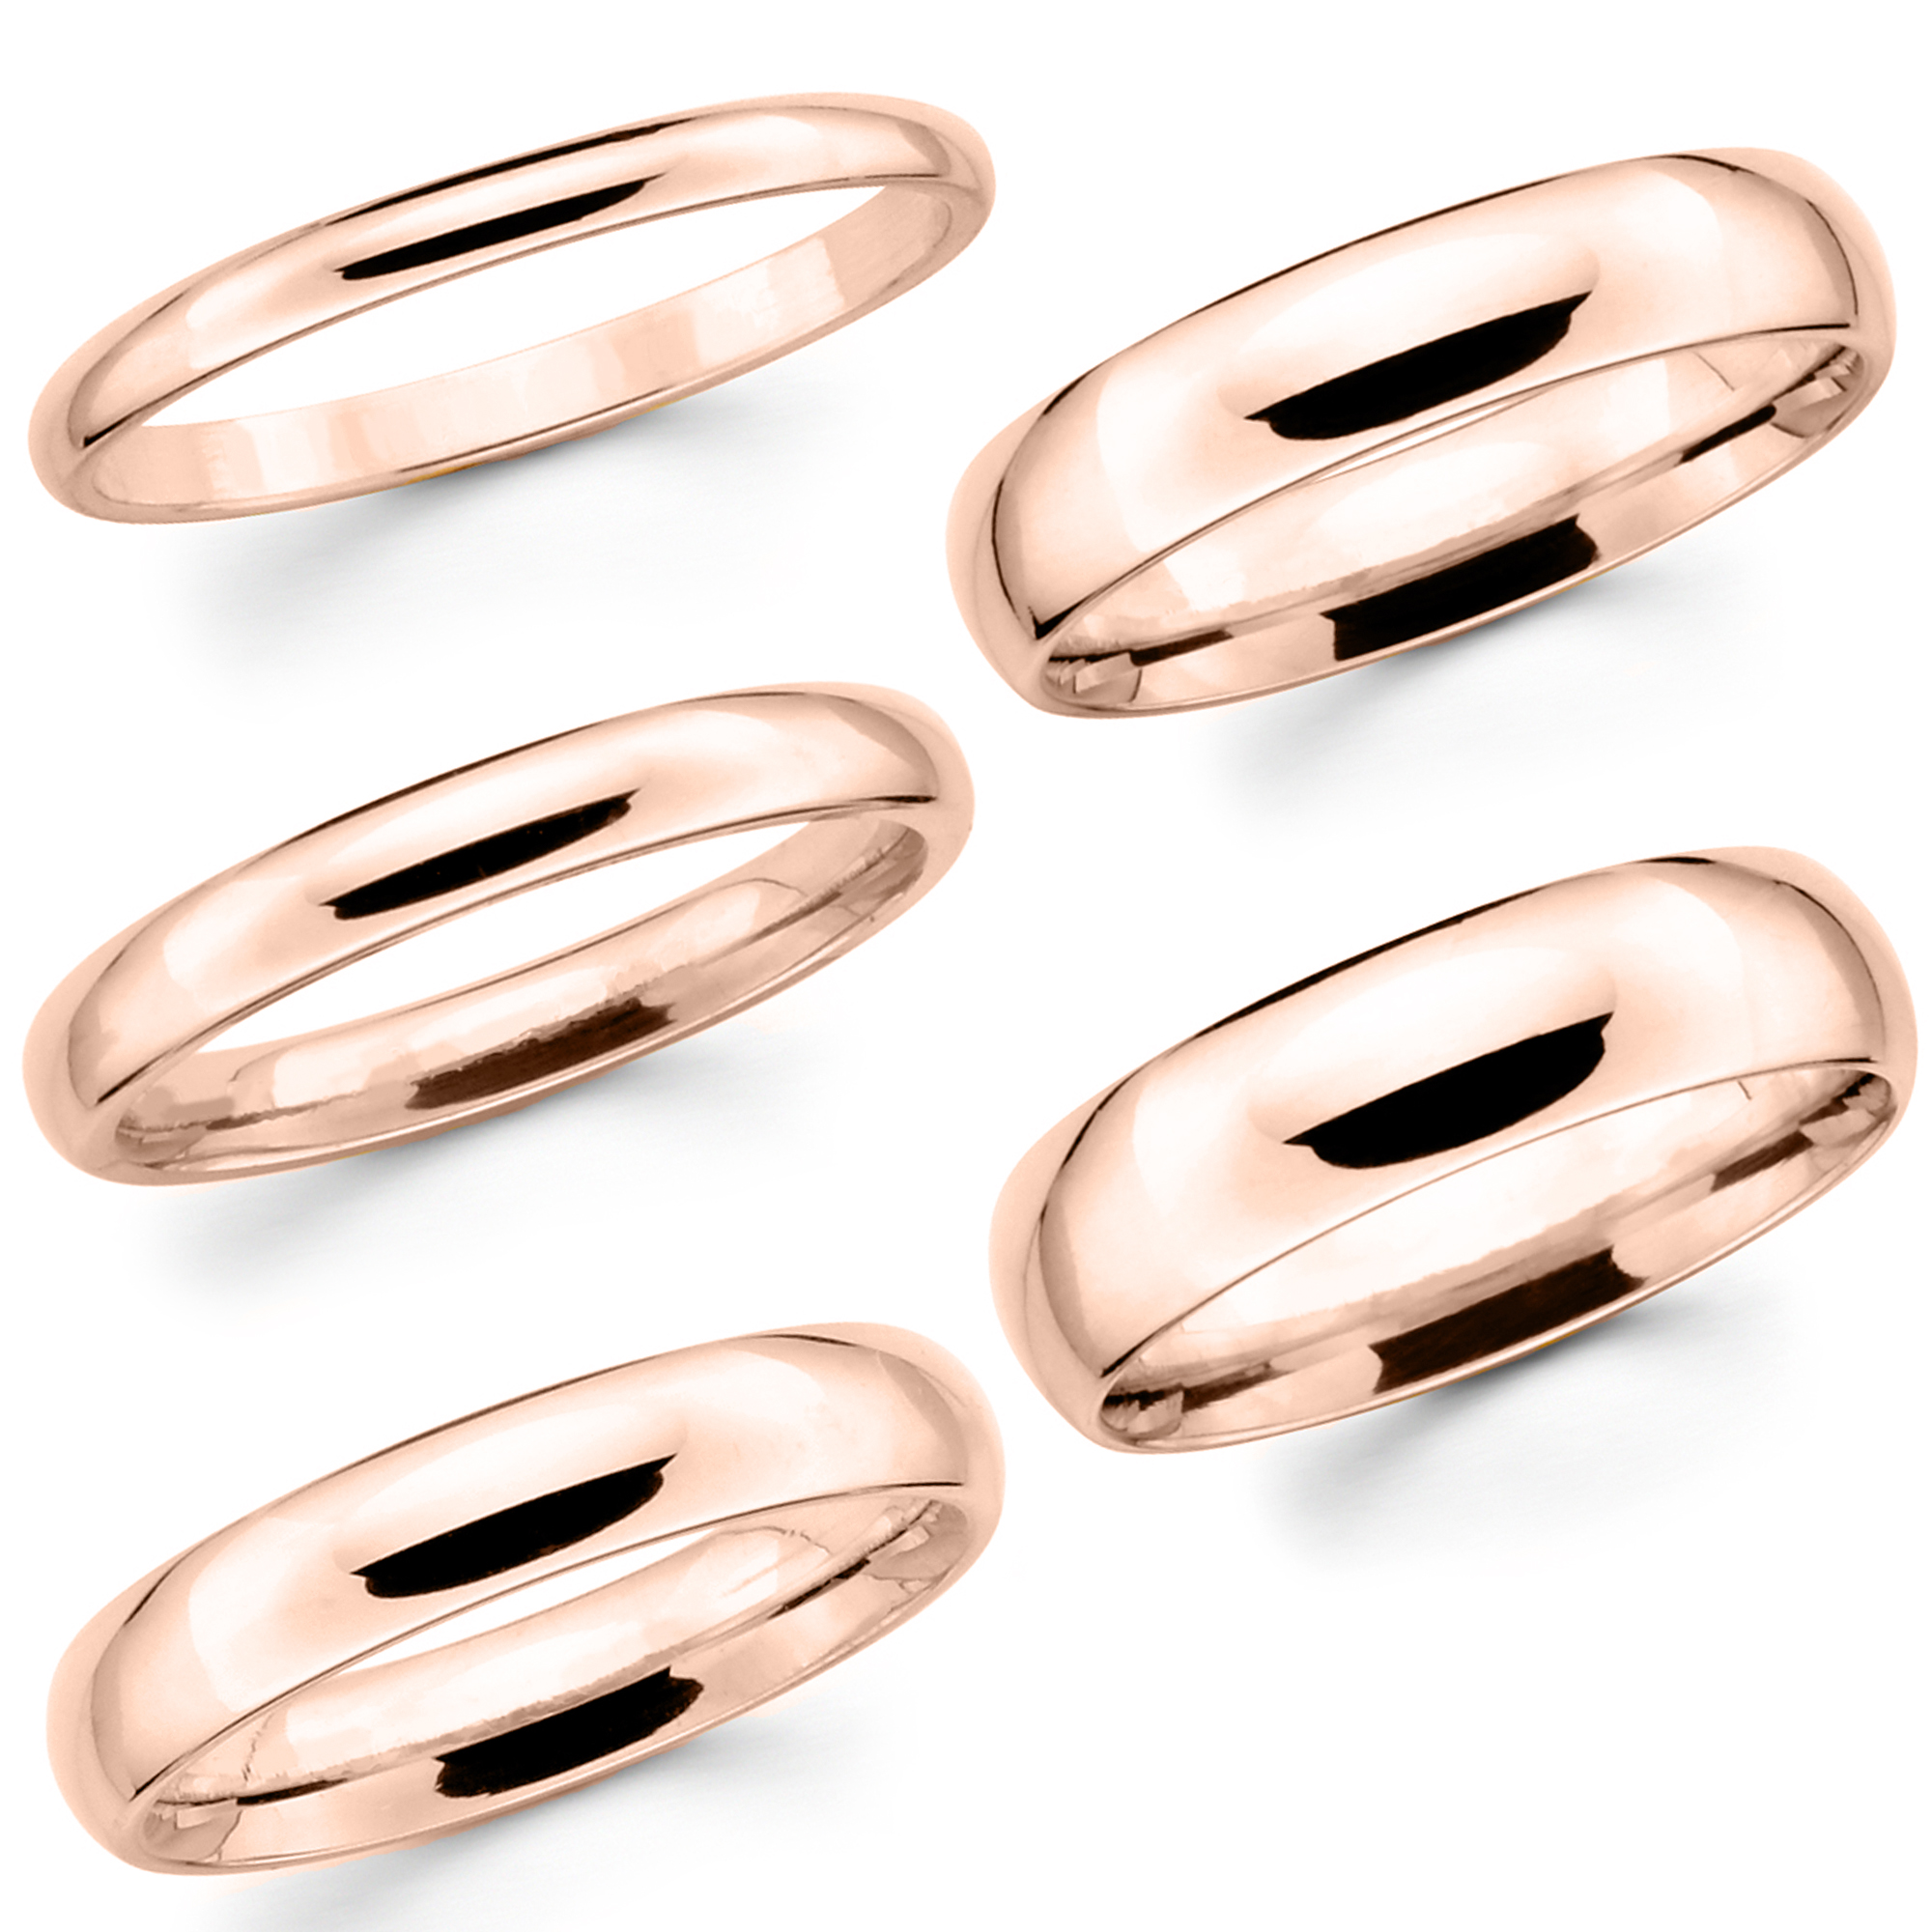 ip bands w straight brides diamond anniversary carat t in year white by gold band com walmart love